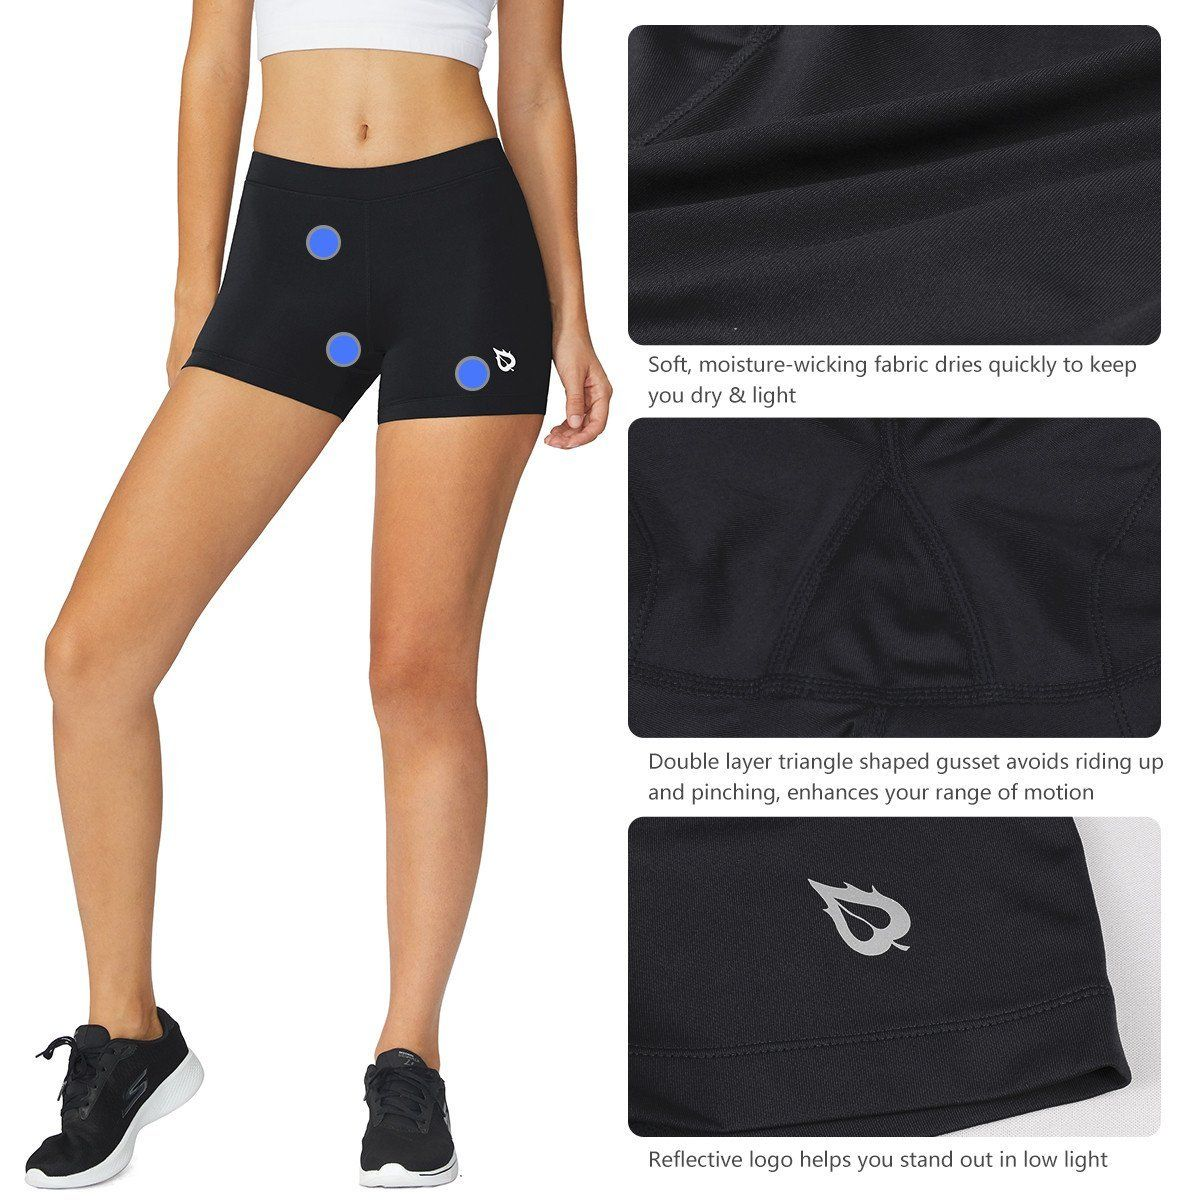 Baleaf Womens 3 Active Fitness Volleyball Shorts Black Size S Learn More By Visiting The Image Link It Gym Shorts Womens Workout Spandex Volleyball Shorts